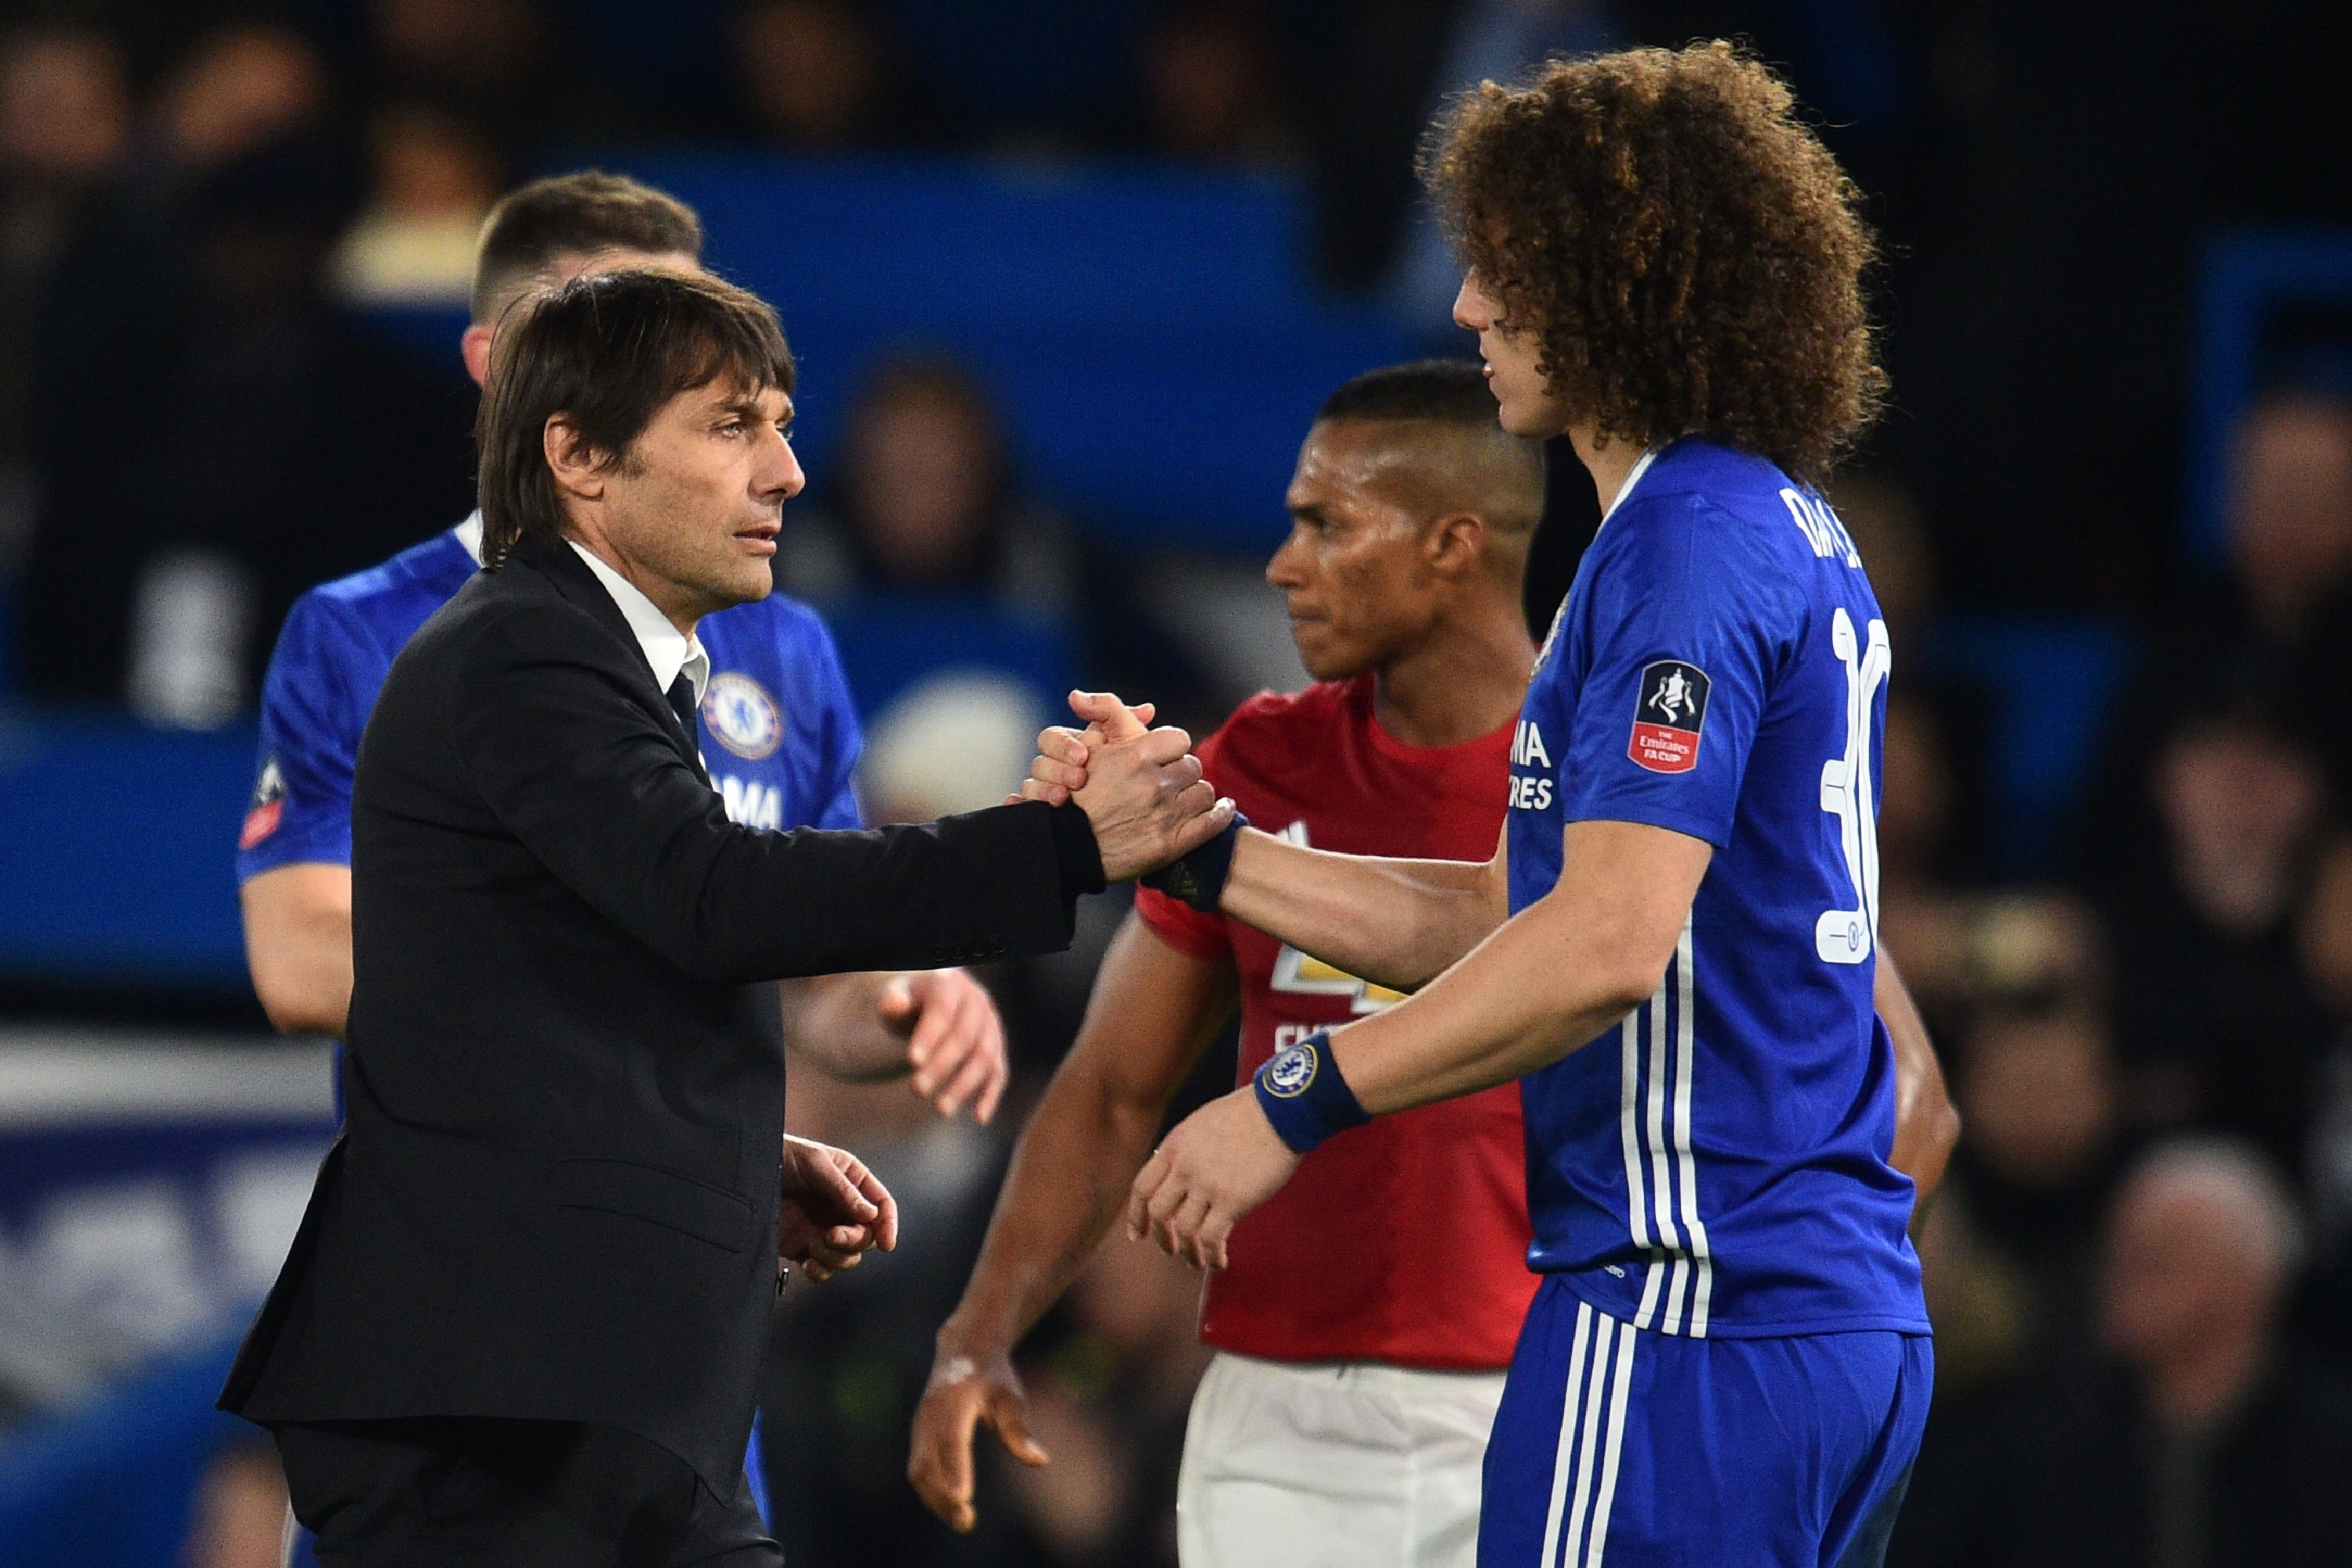 Antonio Conte called on Chelsea stars to maintain focus after FA Cup win over Manchester United, says David Luiz